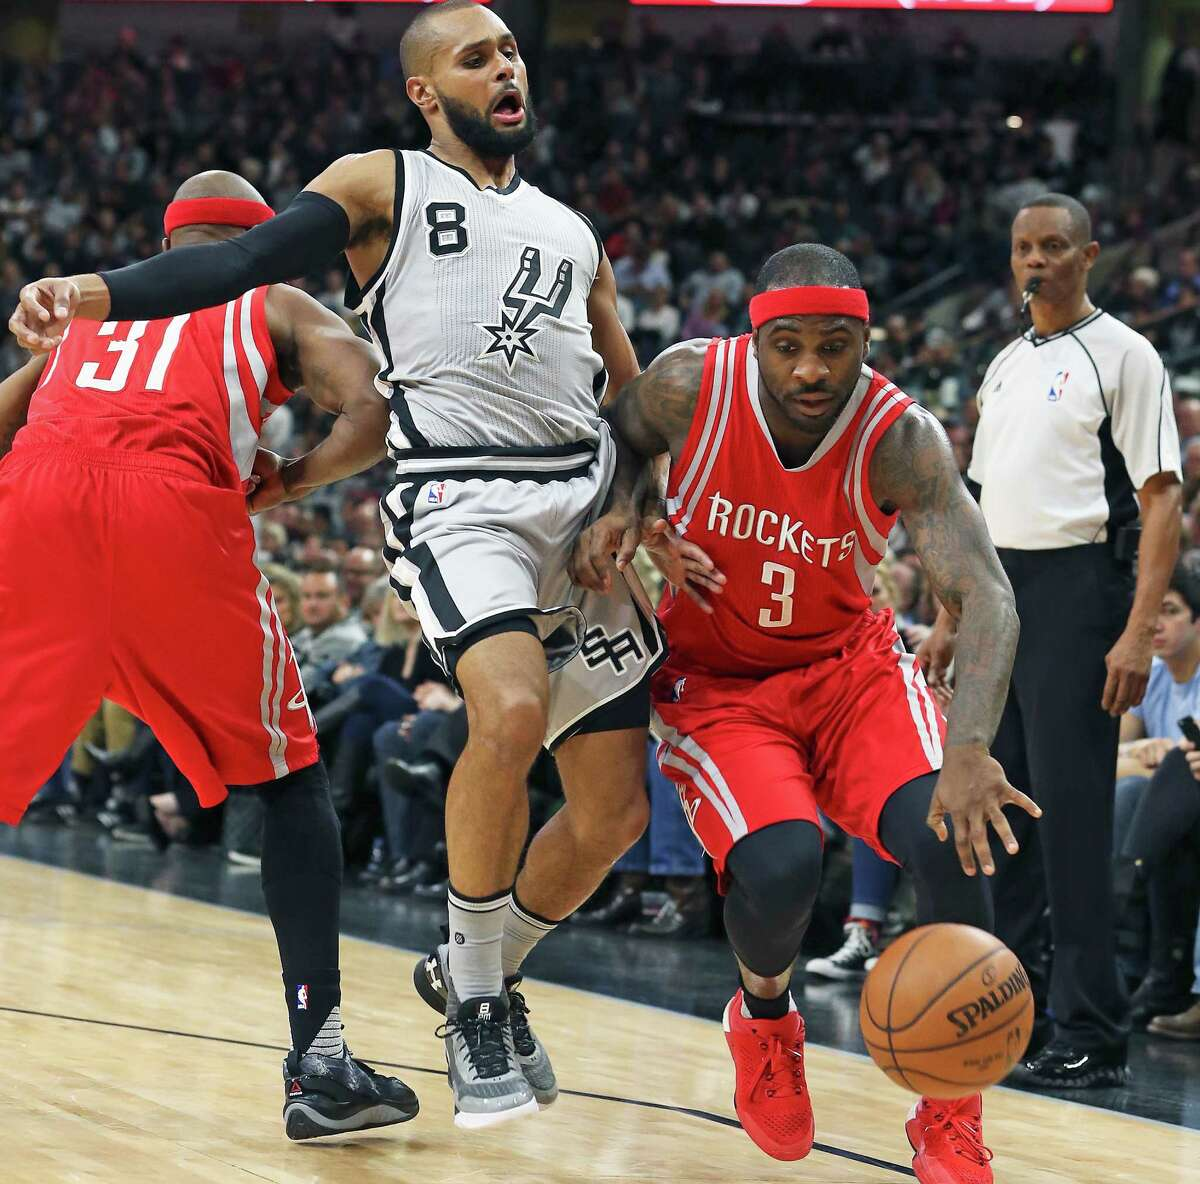 Patty Mills is caught in a screen byJason Terry as Ty Lawson tries to get to the lane as the Spurs host the Rockets at the AT&T Center on January 2, 2016.